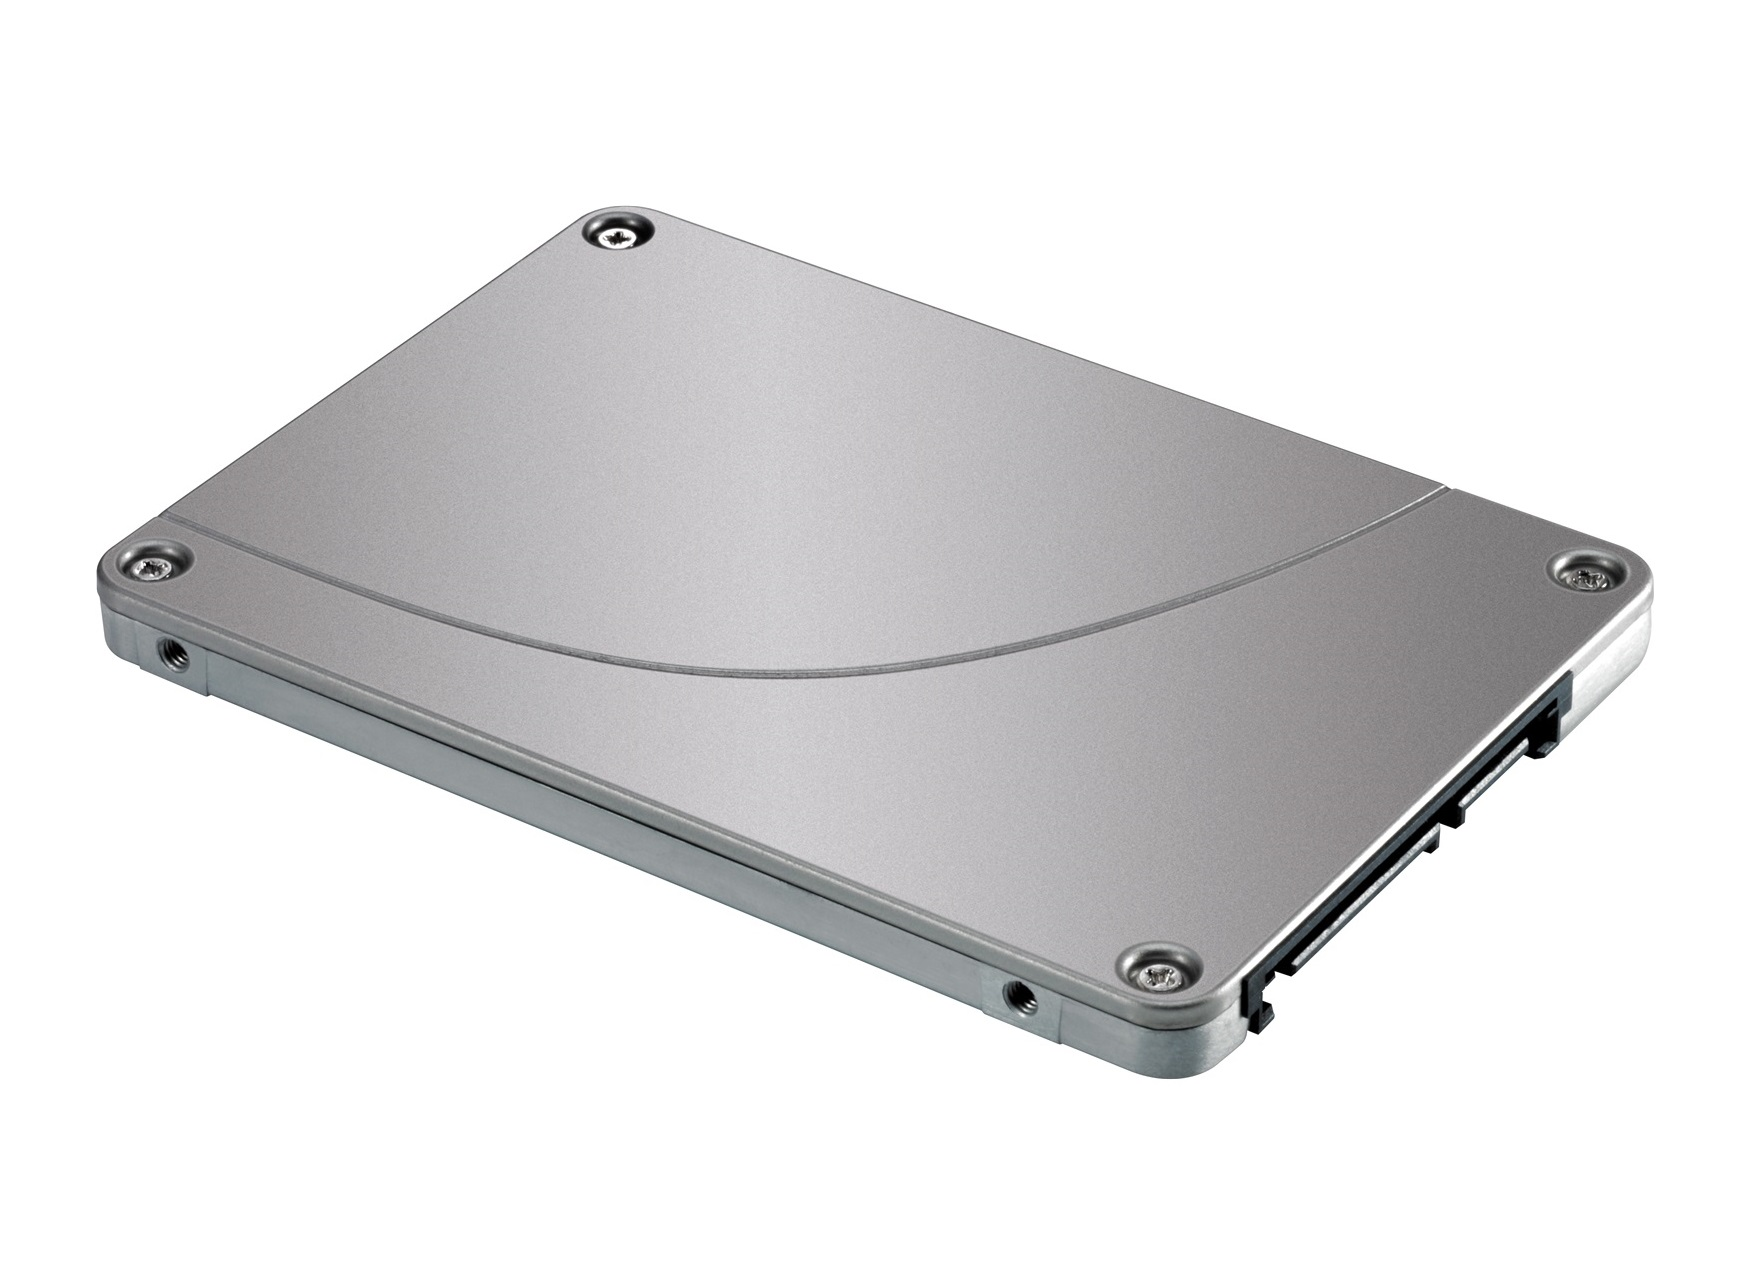 HP 256 GB SATA Value SSD Drive